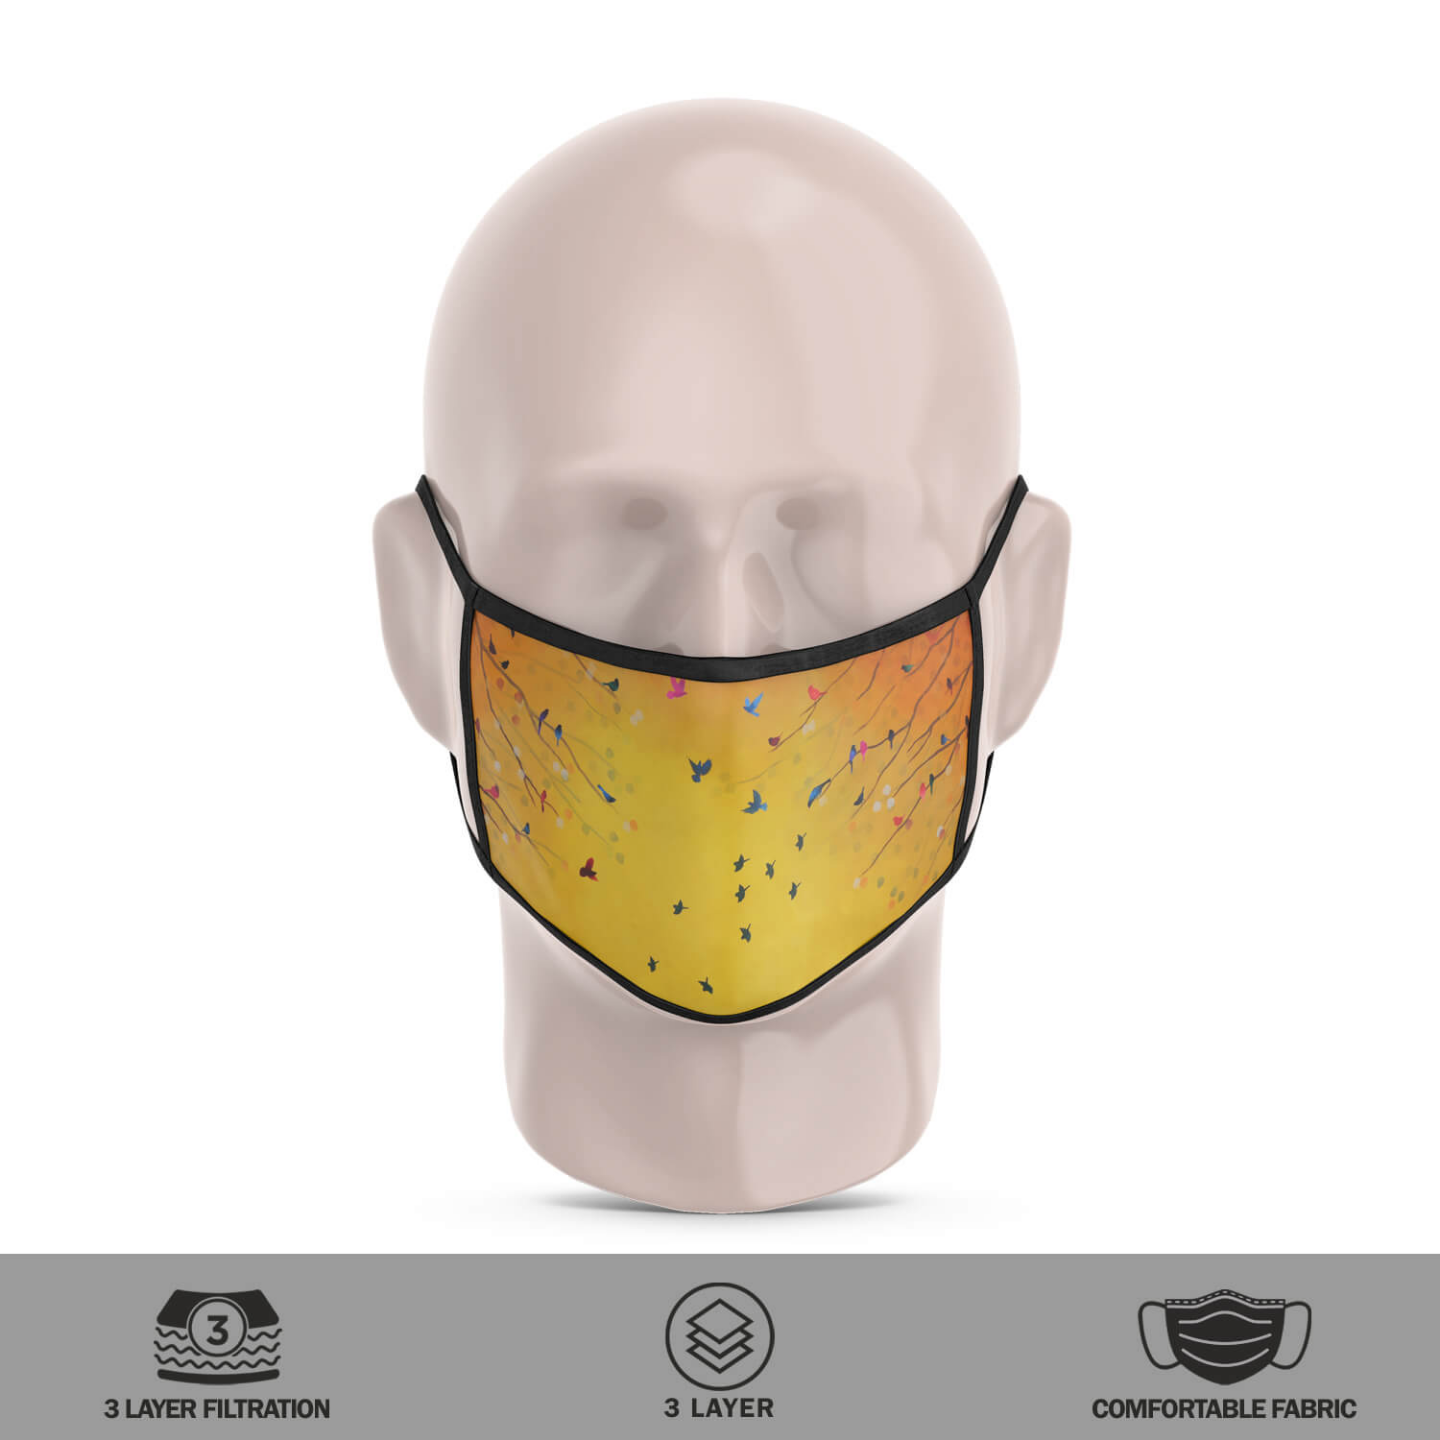 Song from Autumn Reusable Face Mask - Priyanka Waghela